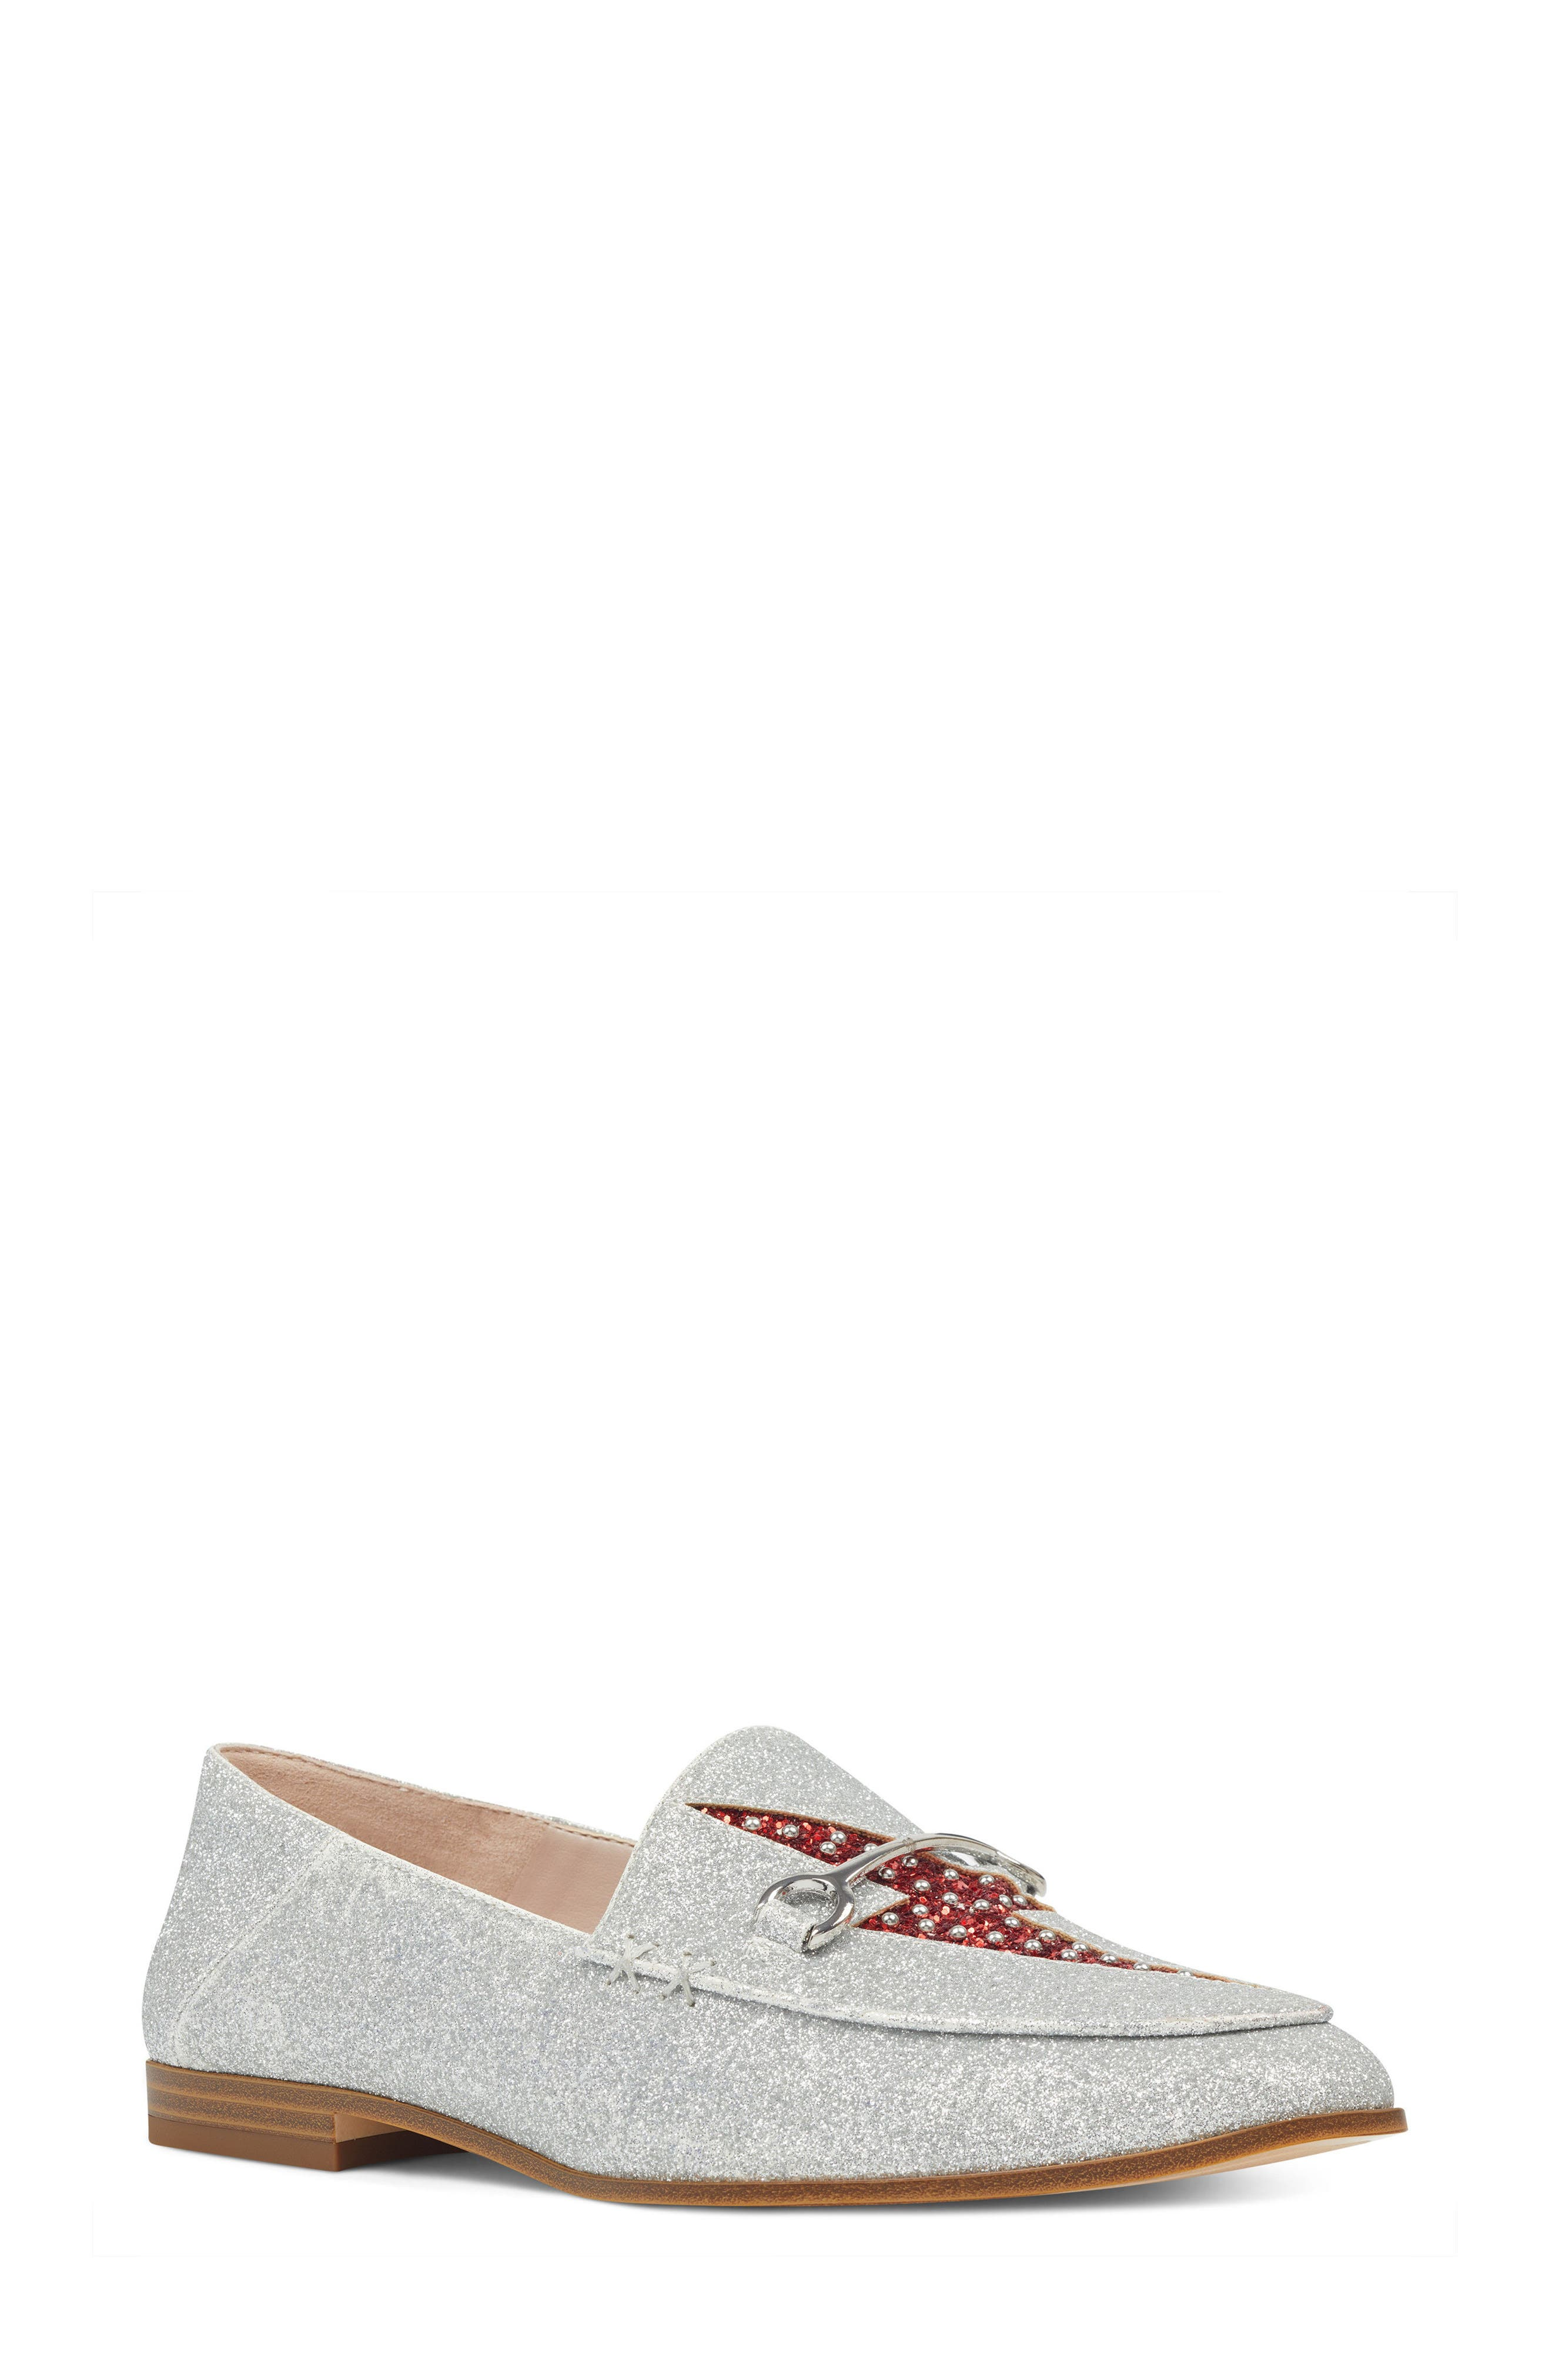 Wildgirls Embellished Loafer,                         Main,                         color, SILVER/ RED FABRIC